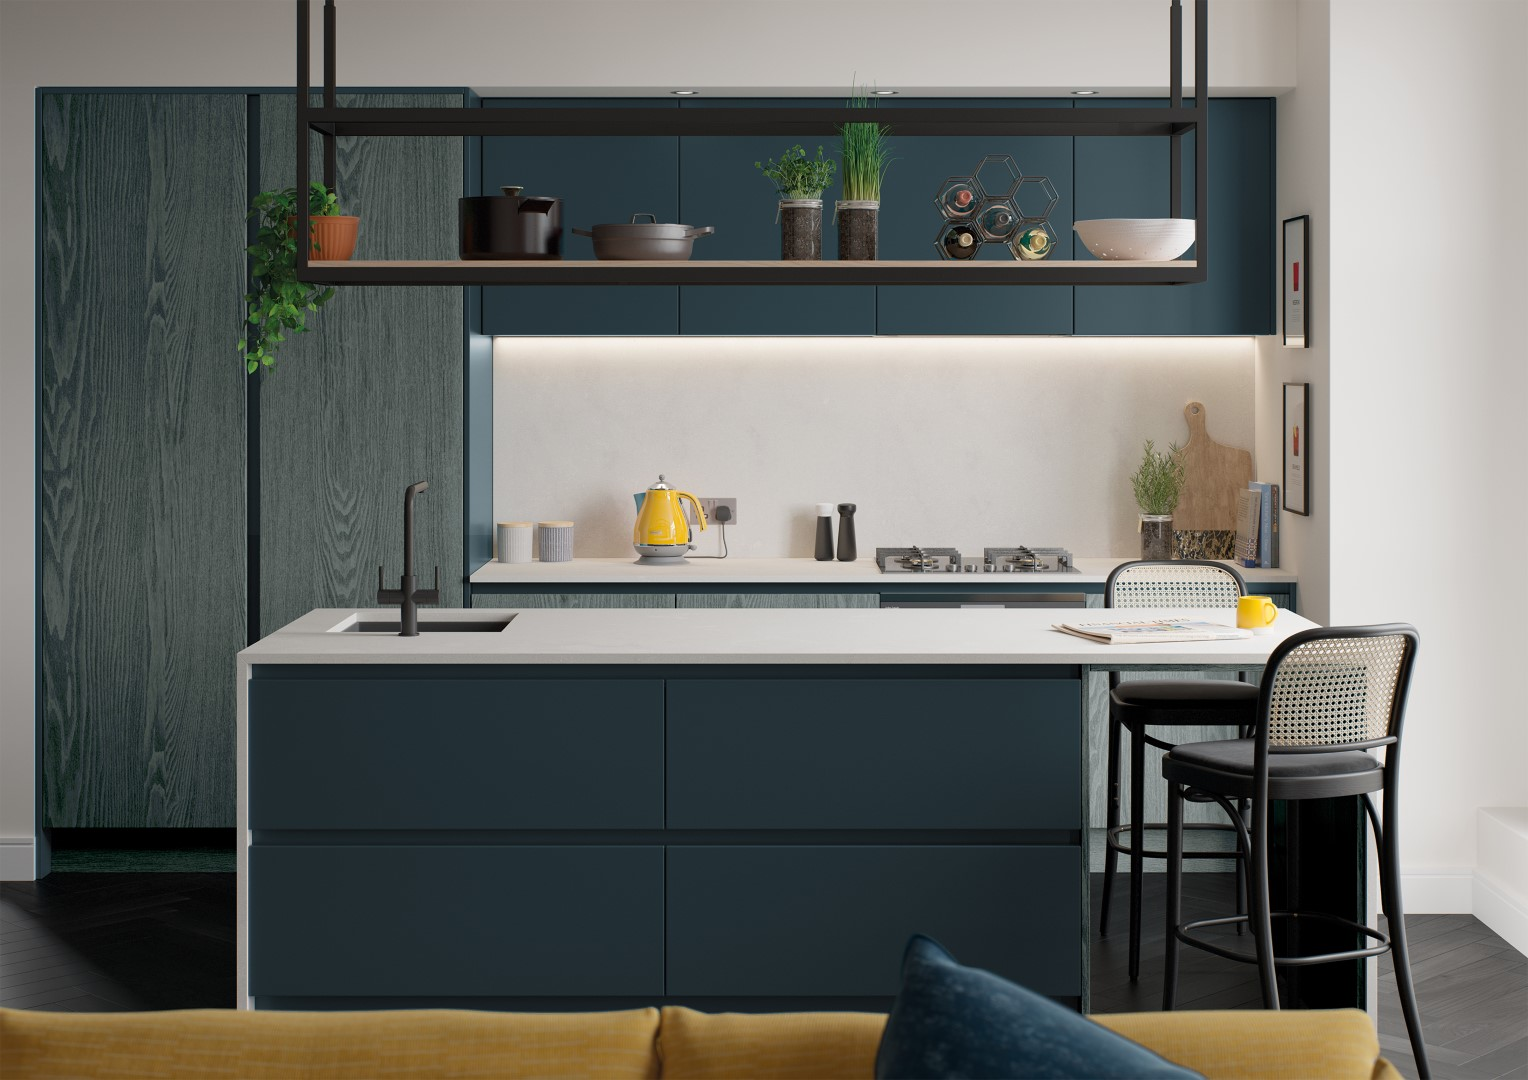 Kelso Stained Pacific Blue and Zola Matte Marine - Kitchen Design - Alan Kelly Kitchens Waterford - 2